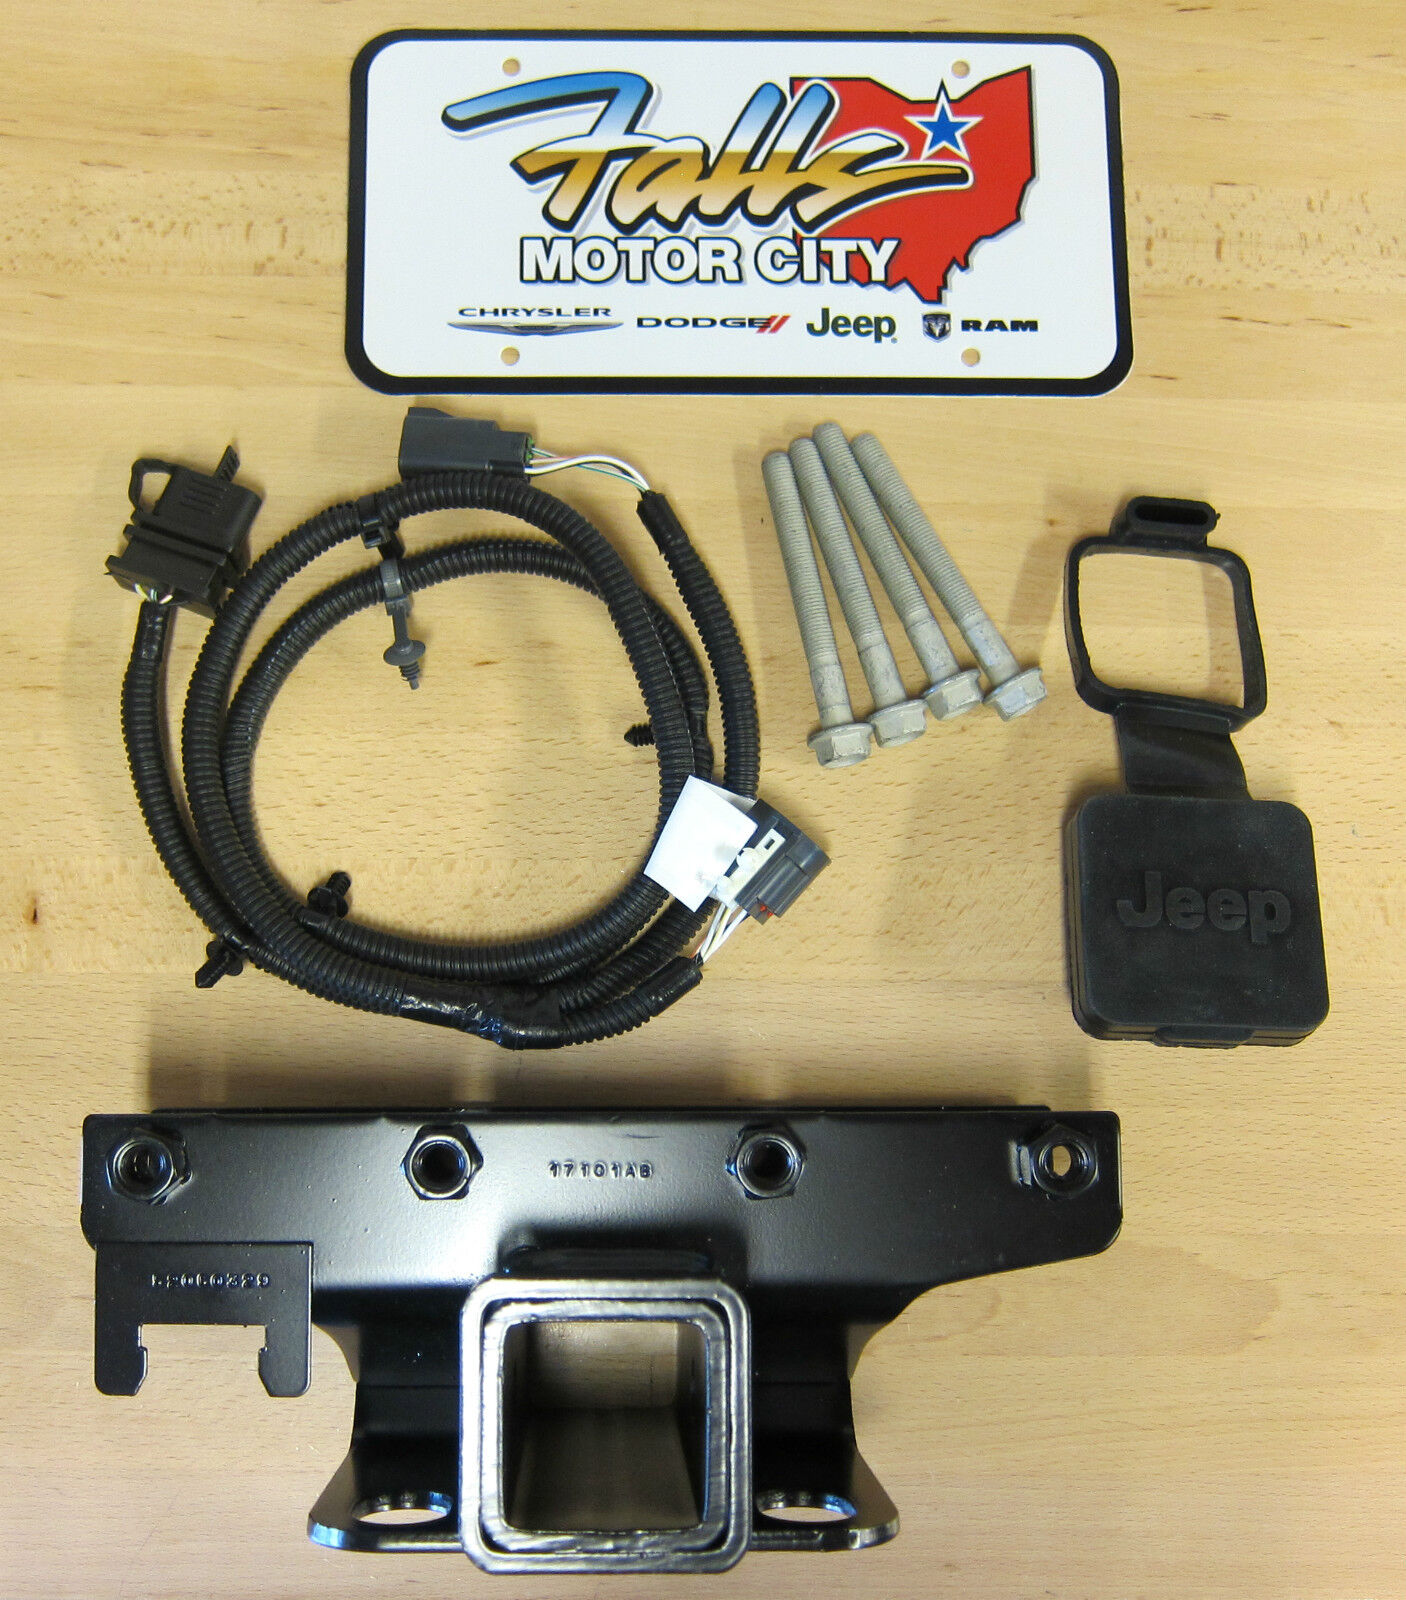 2007 2018 Jeep Wrangler Jk Trailer Tow Hitch Receiver 4 Way Wiring Kit Cover